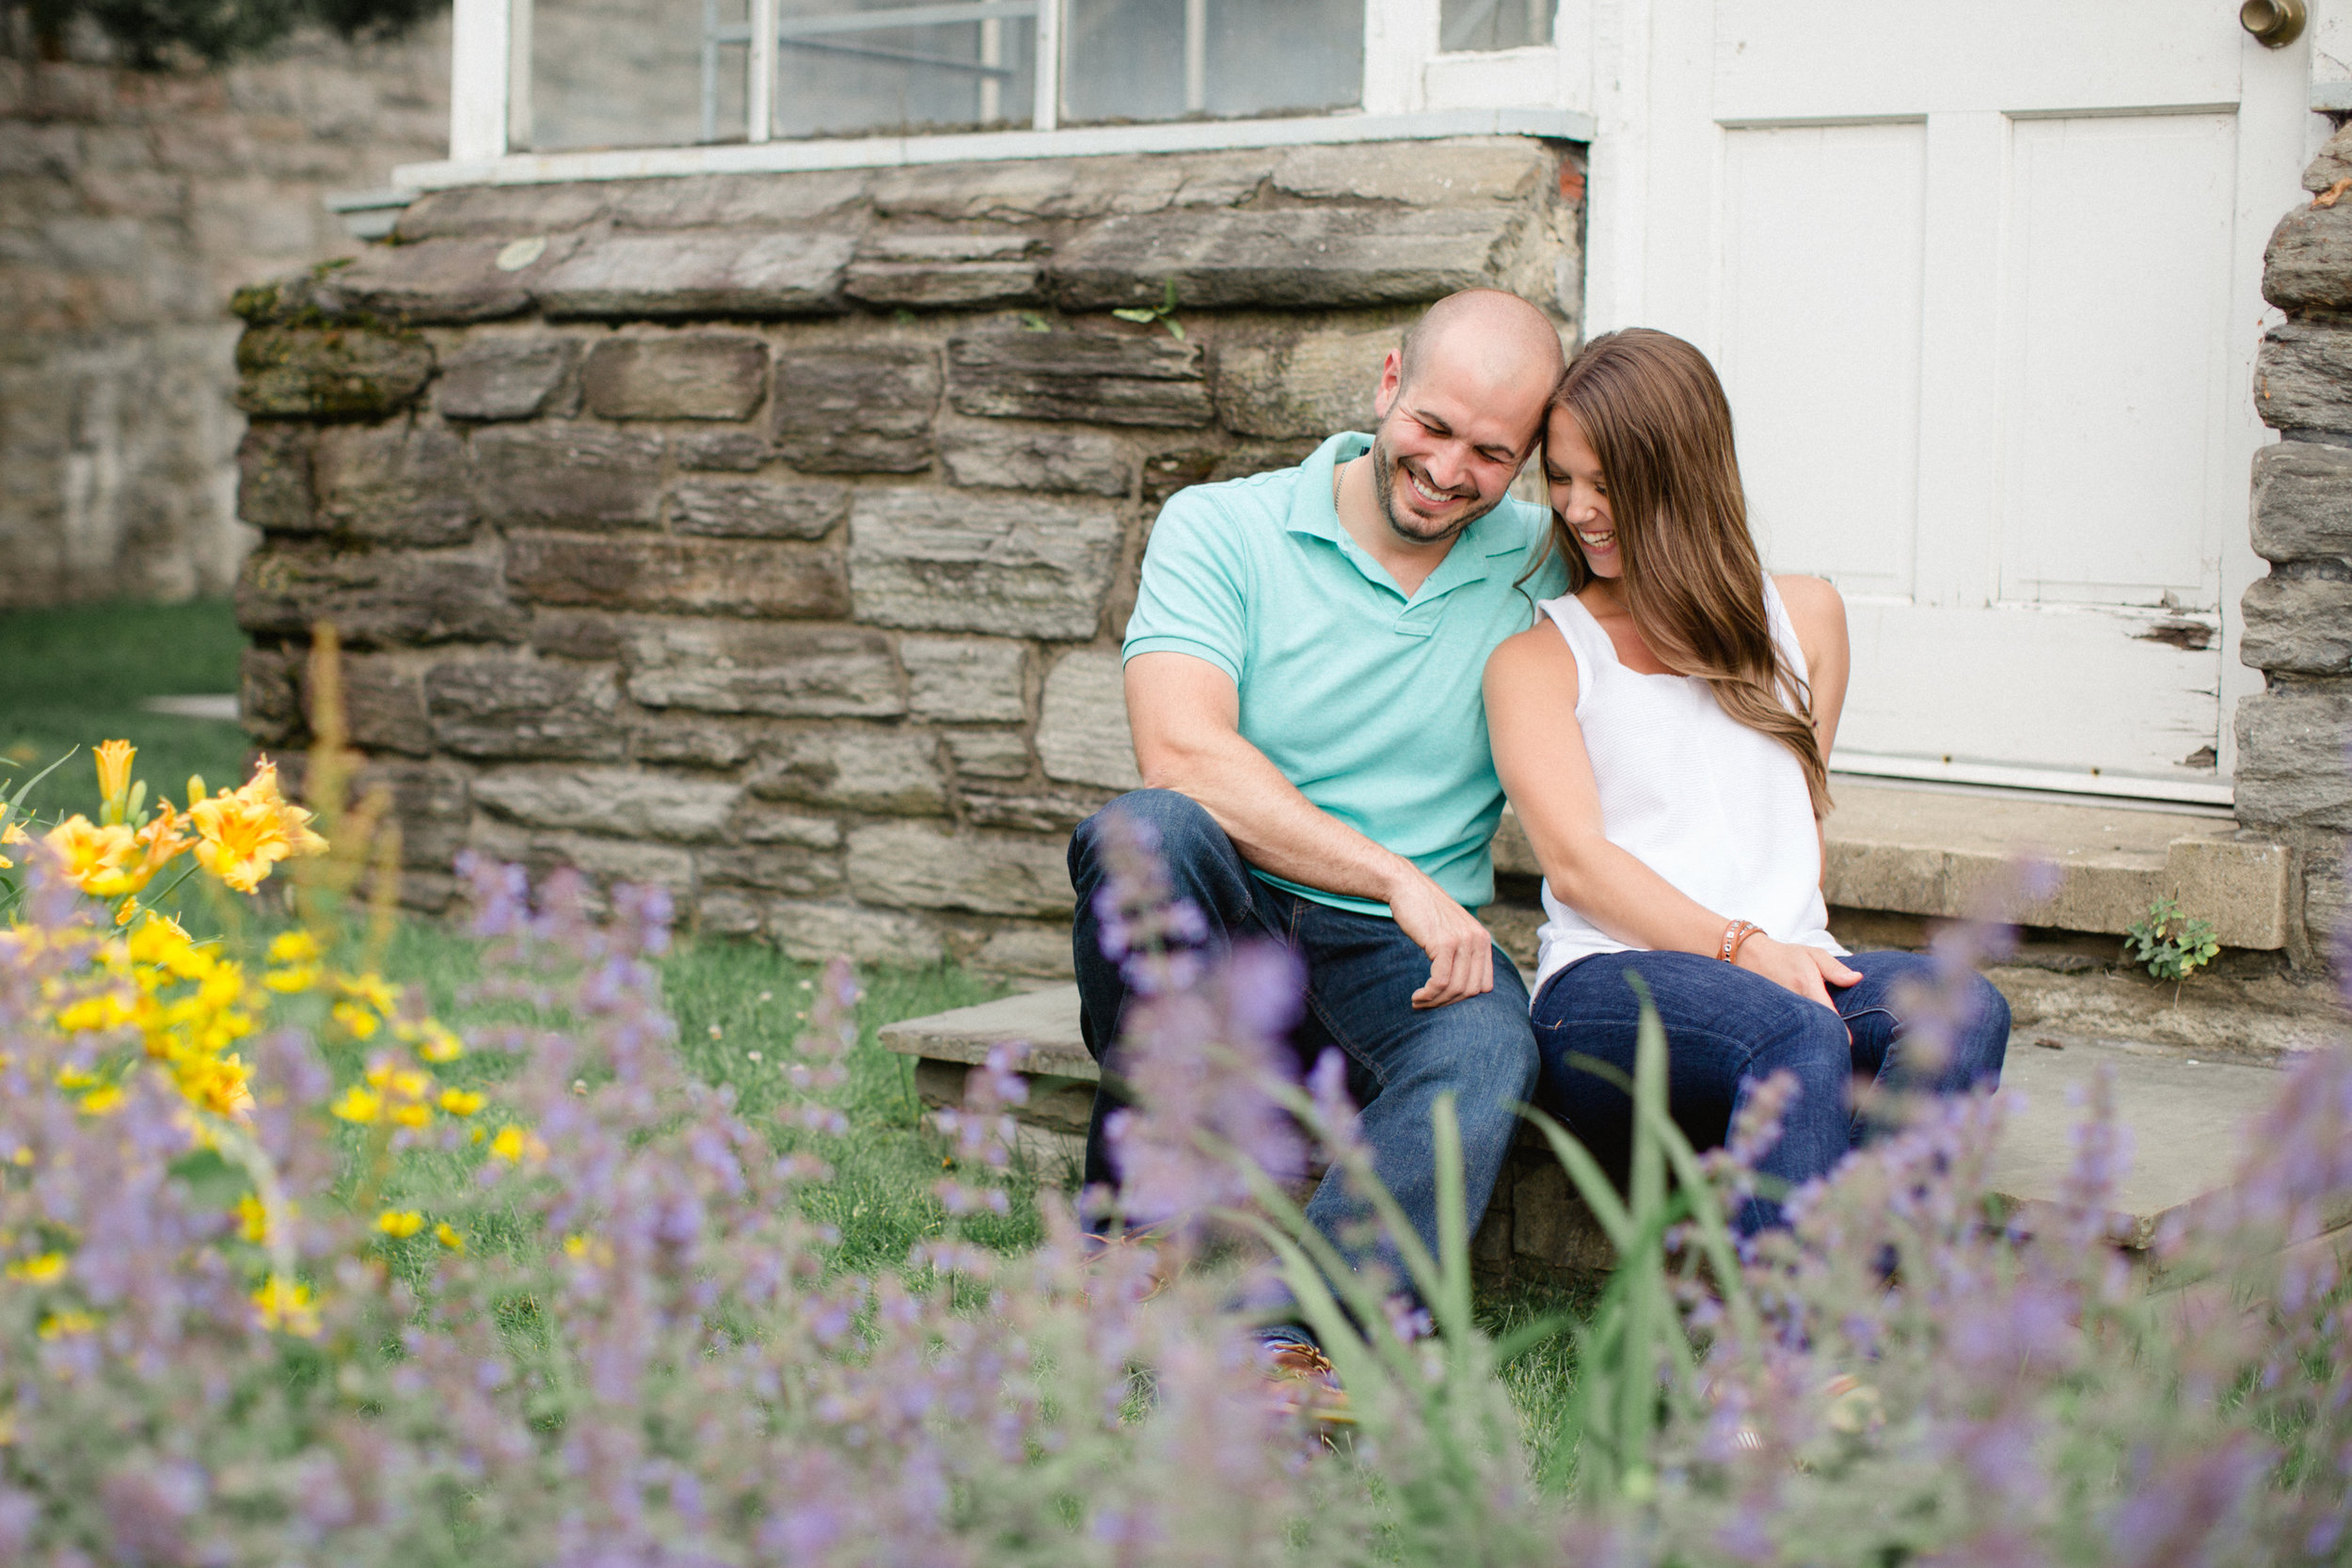 University of Scranton Engagement Session Photos_JDP-4.jpg